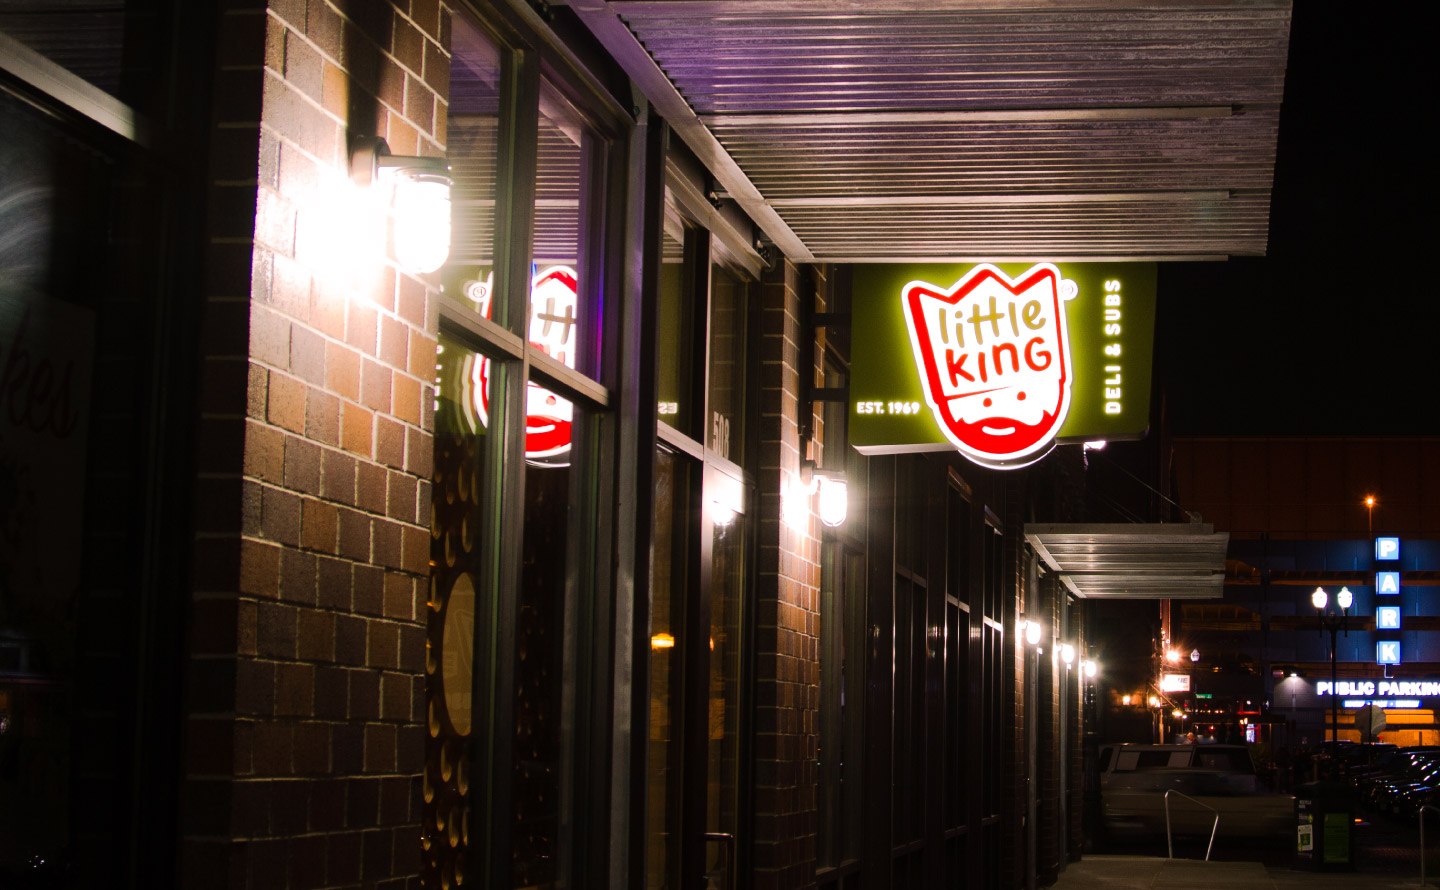 An exterior photograph of Little King at night